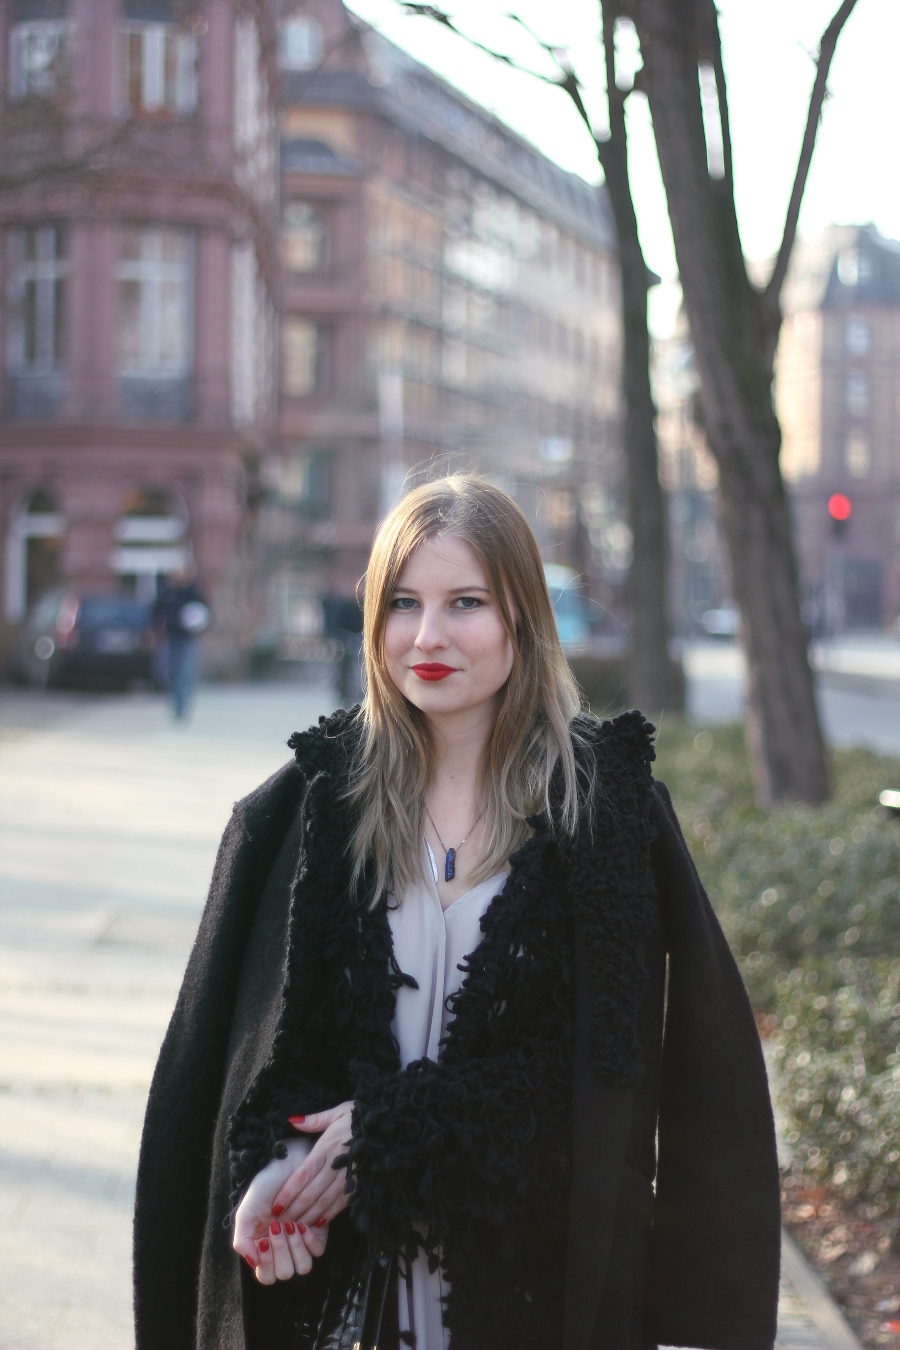 outfit blogger frankfurt girl red lips nails matchy mantel diesel coat zara dress